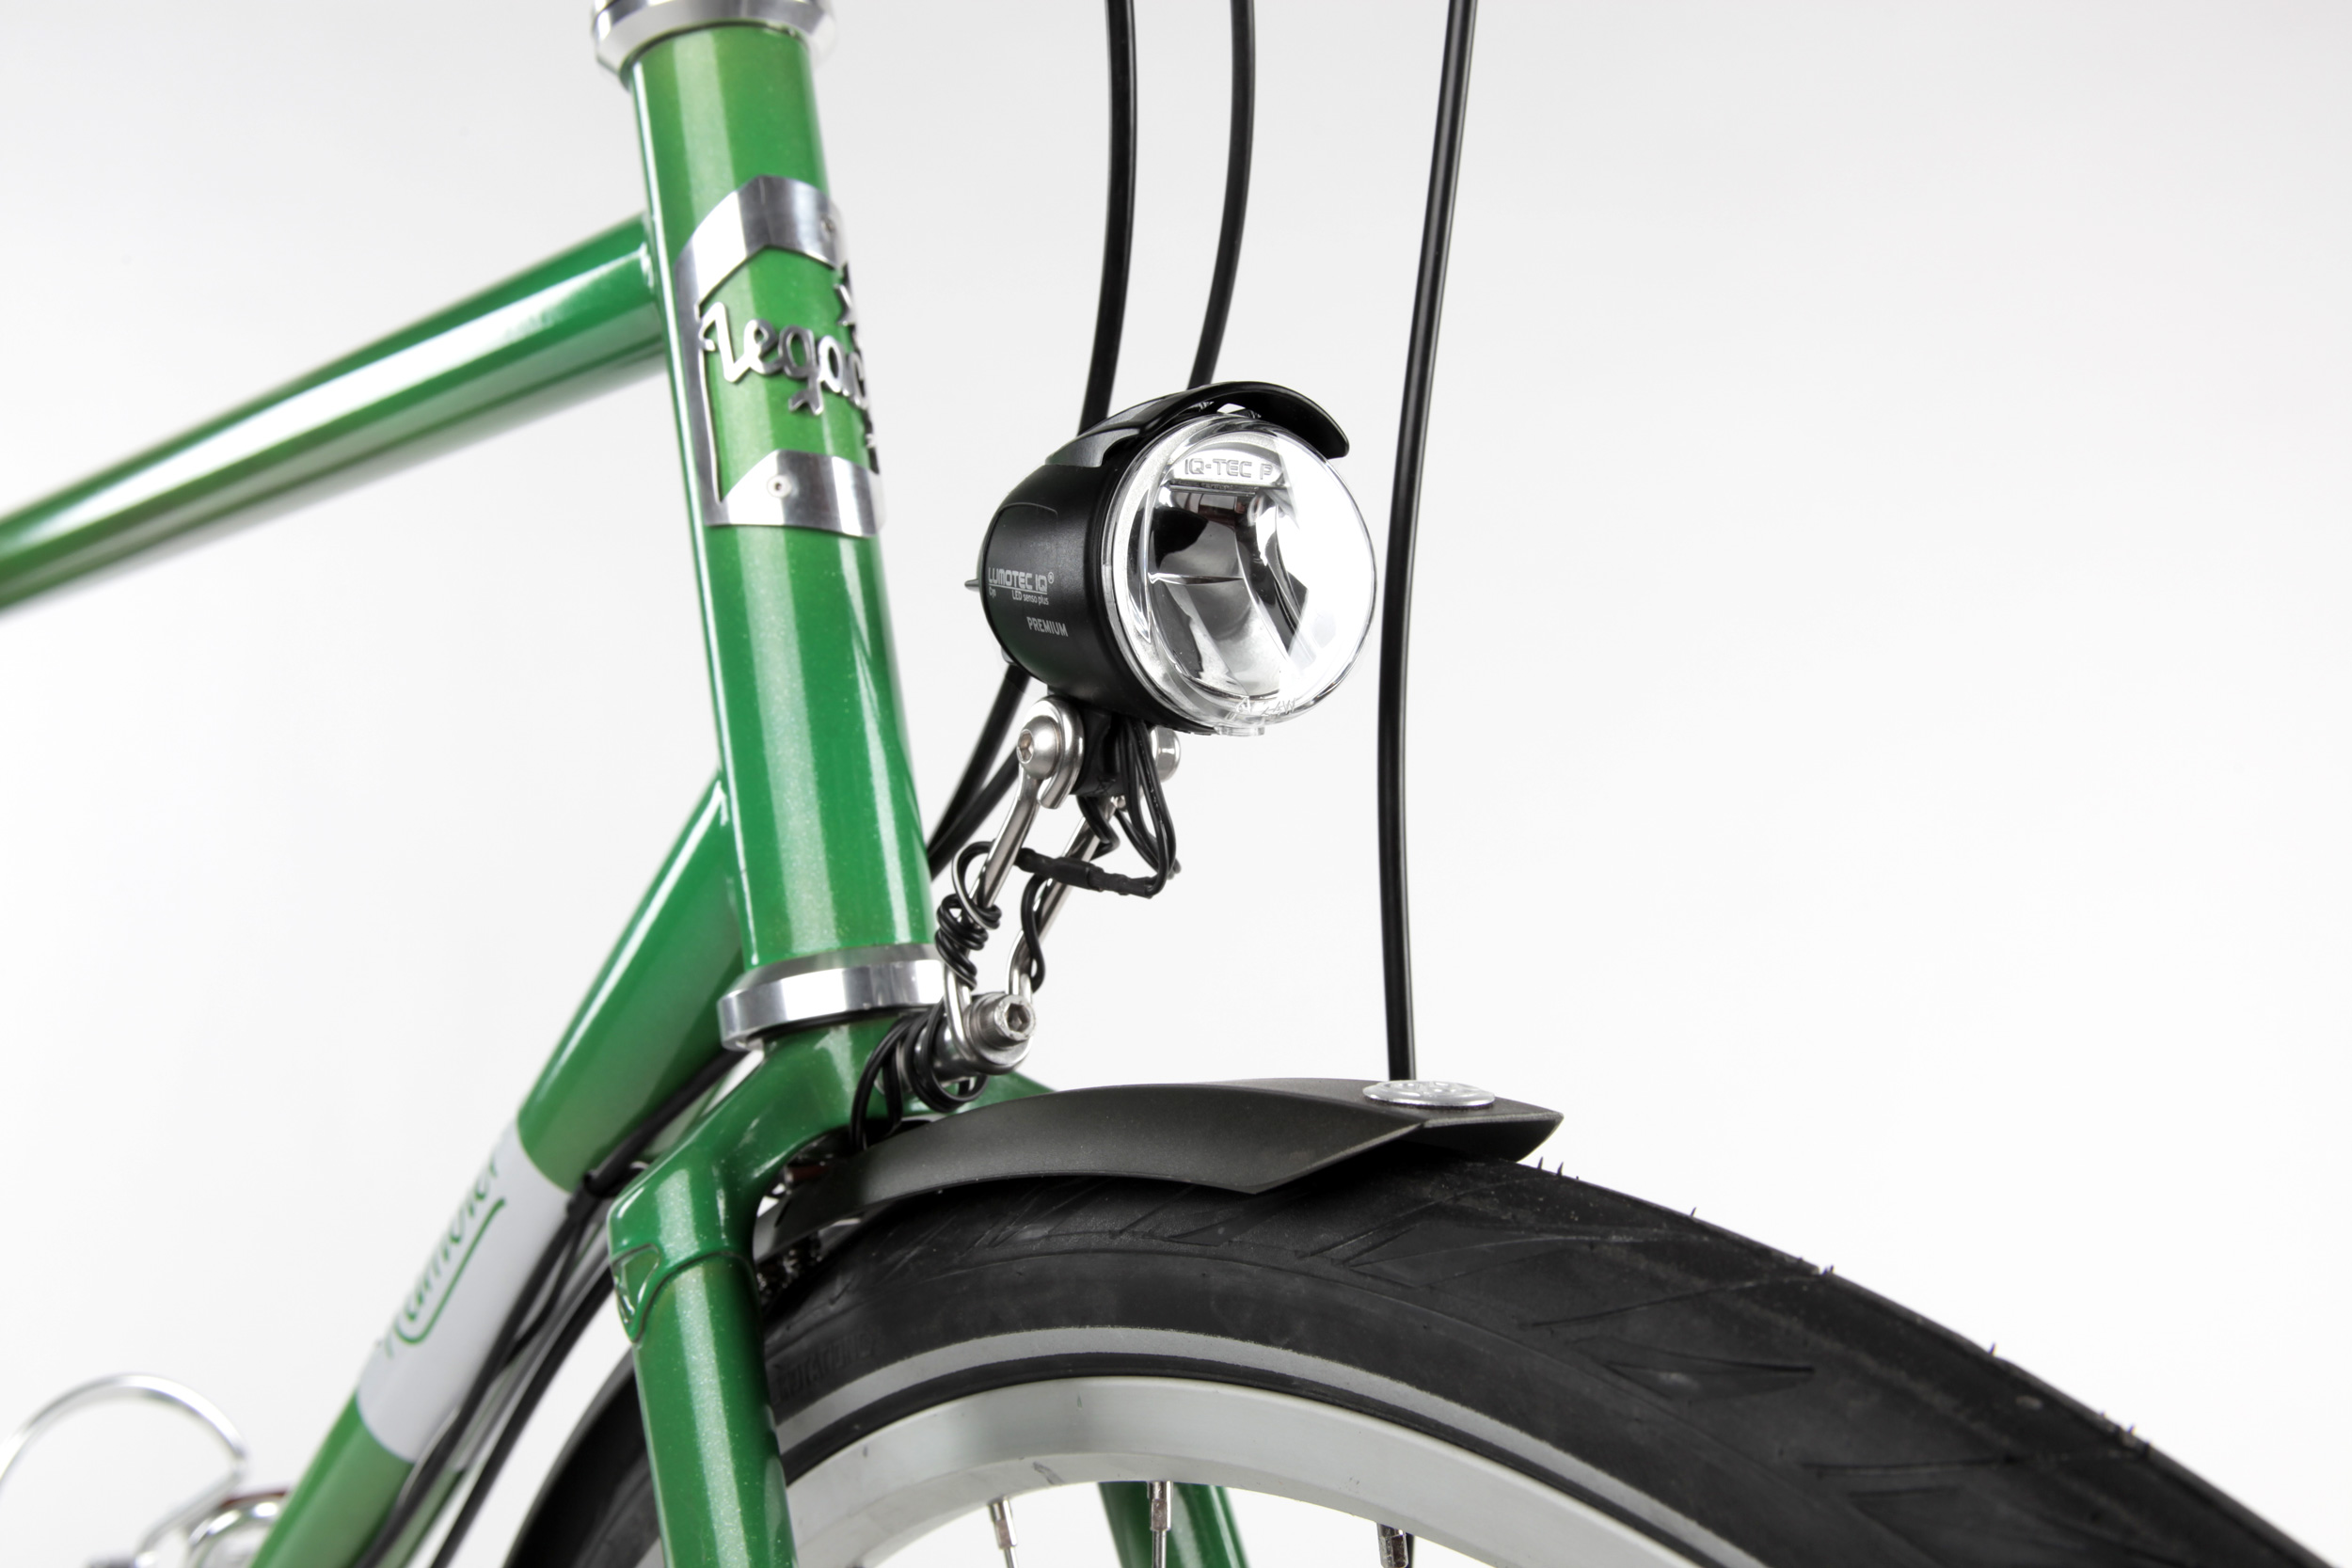 Wired Lighting:   Hub generator powered lights are always attached to the bike and shining while the wheels are rolling—no batteries required.